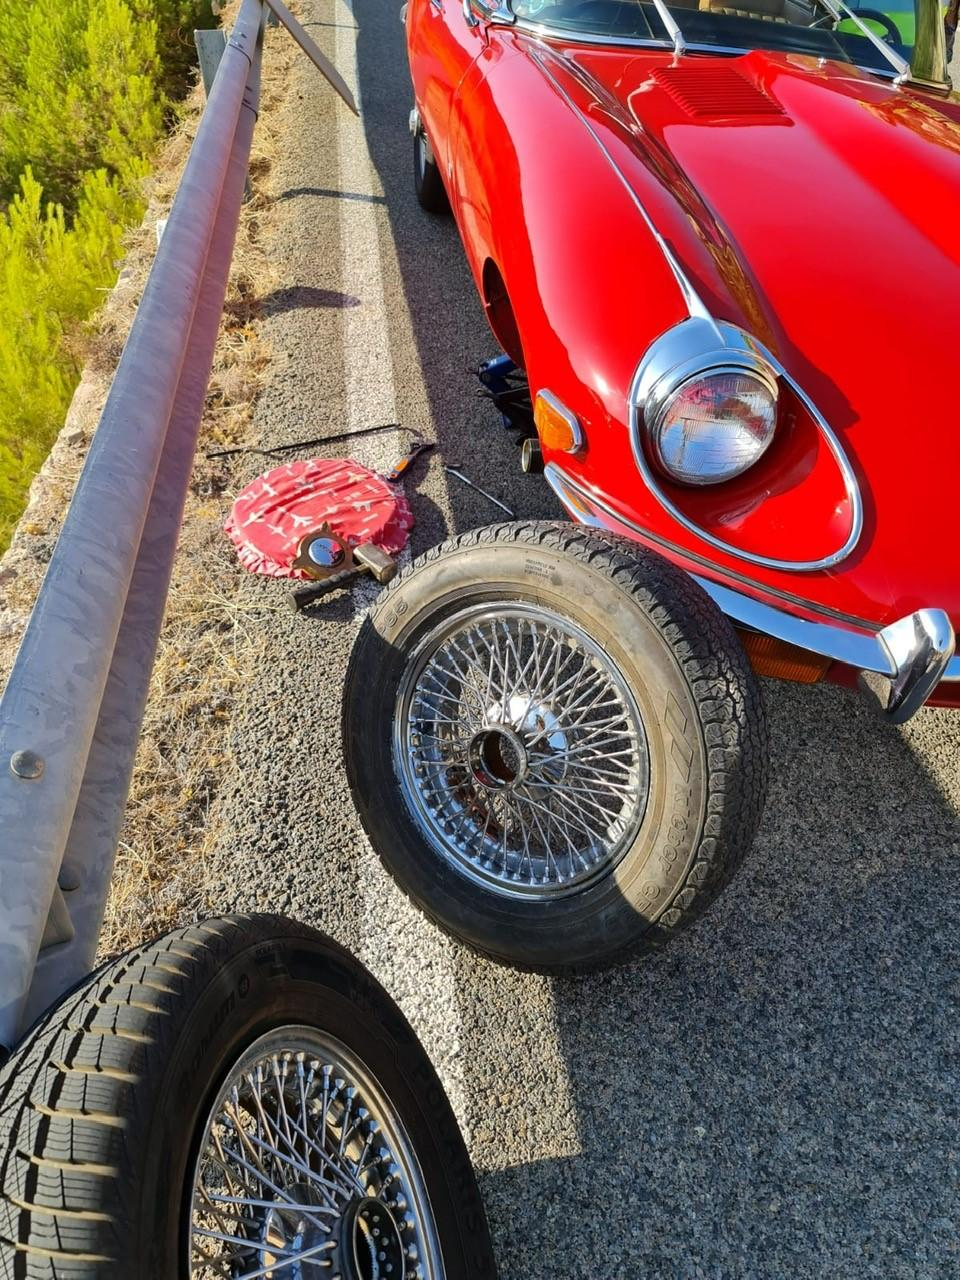 Spare wheels are bulky, amazing to even fit one into an E-Type.